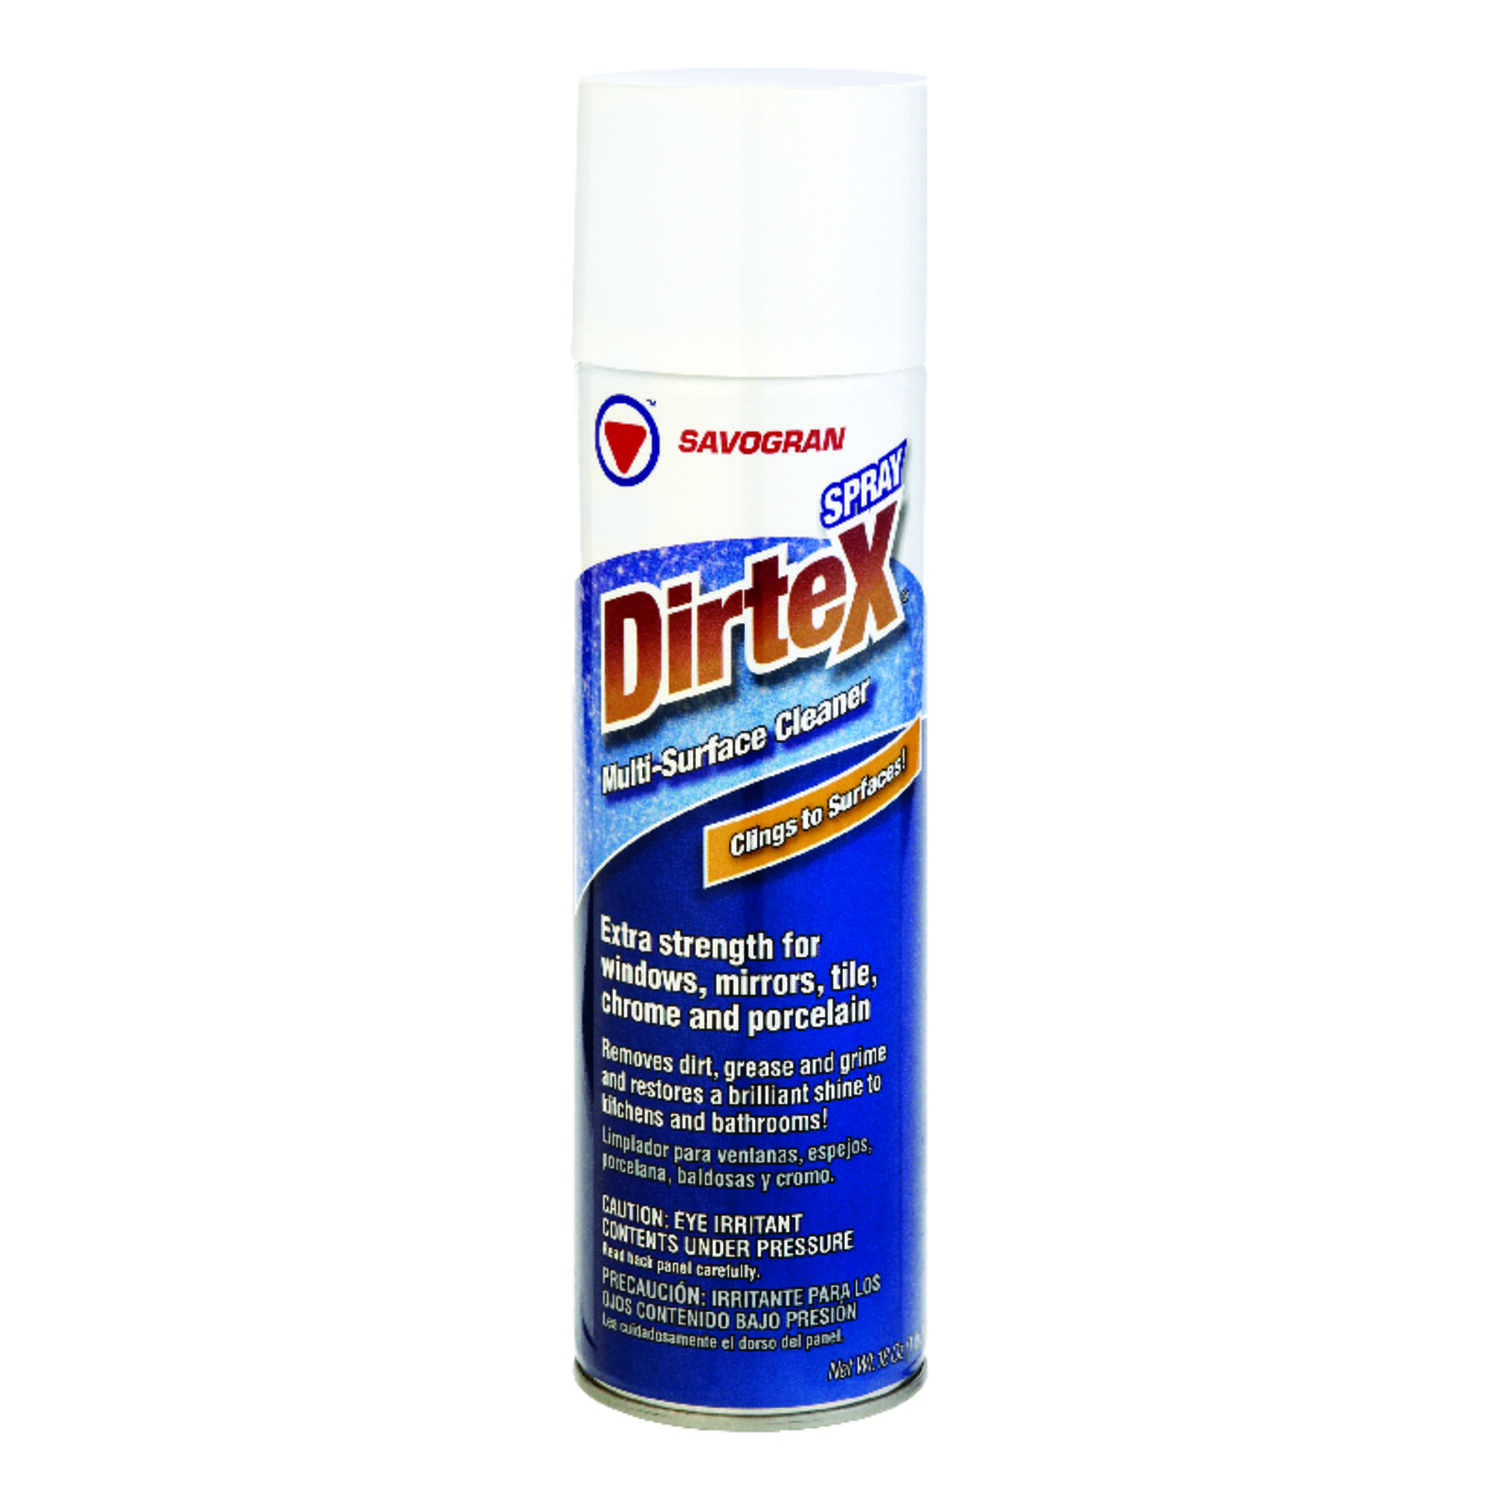 Savogran  Dirtex  No Scent All Purpose Cleaner  Liquid  18 oz.